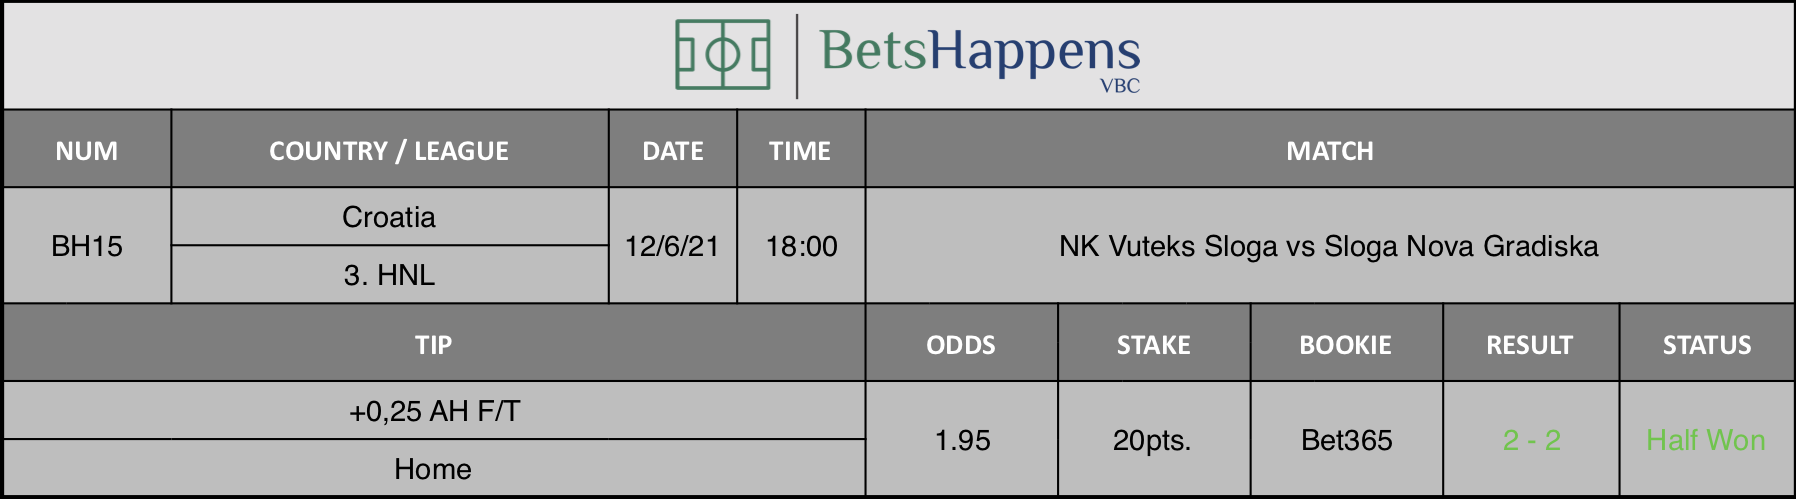 Results of our tip for the NK Vuteks Sloga vs Sloga Nova Gradiska Match +0,25 AH F/T Home is recommended.